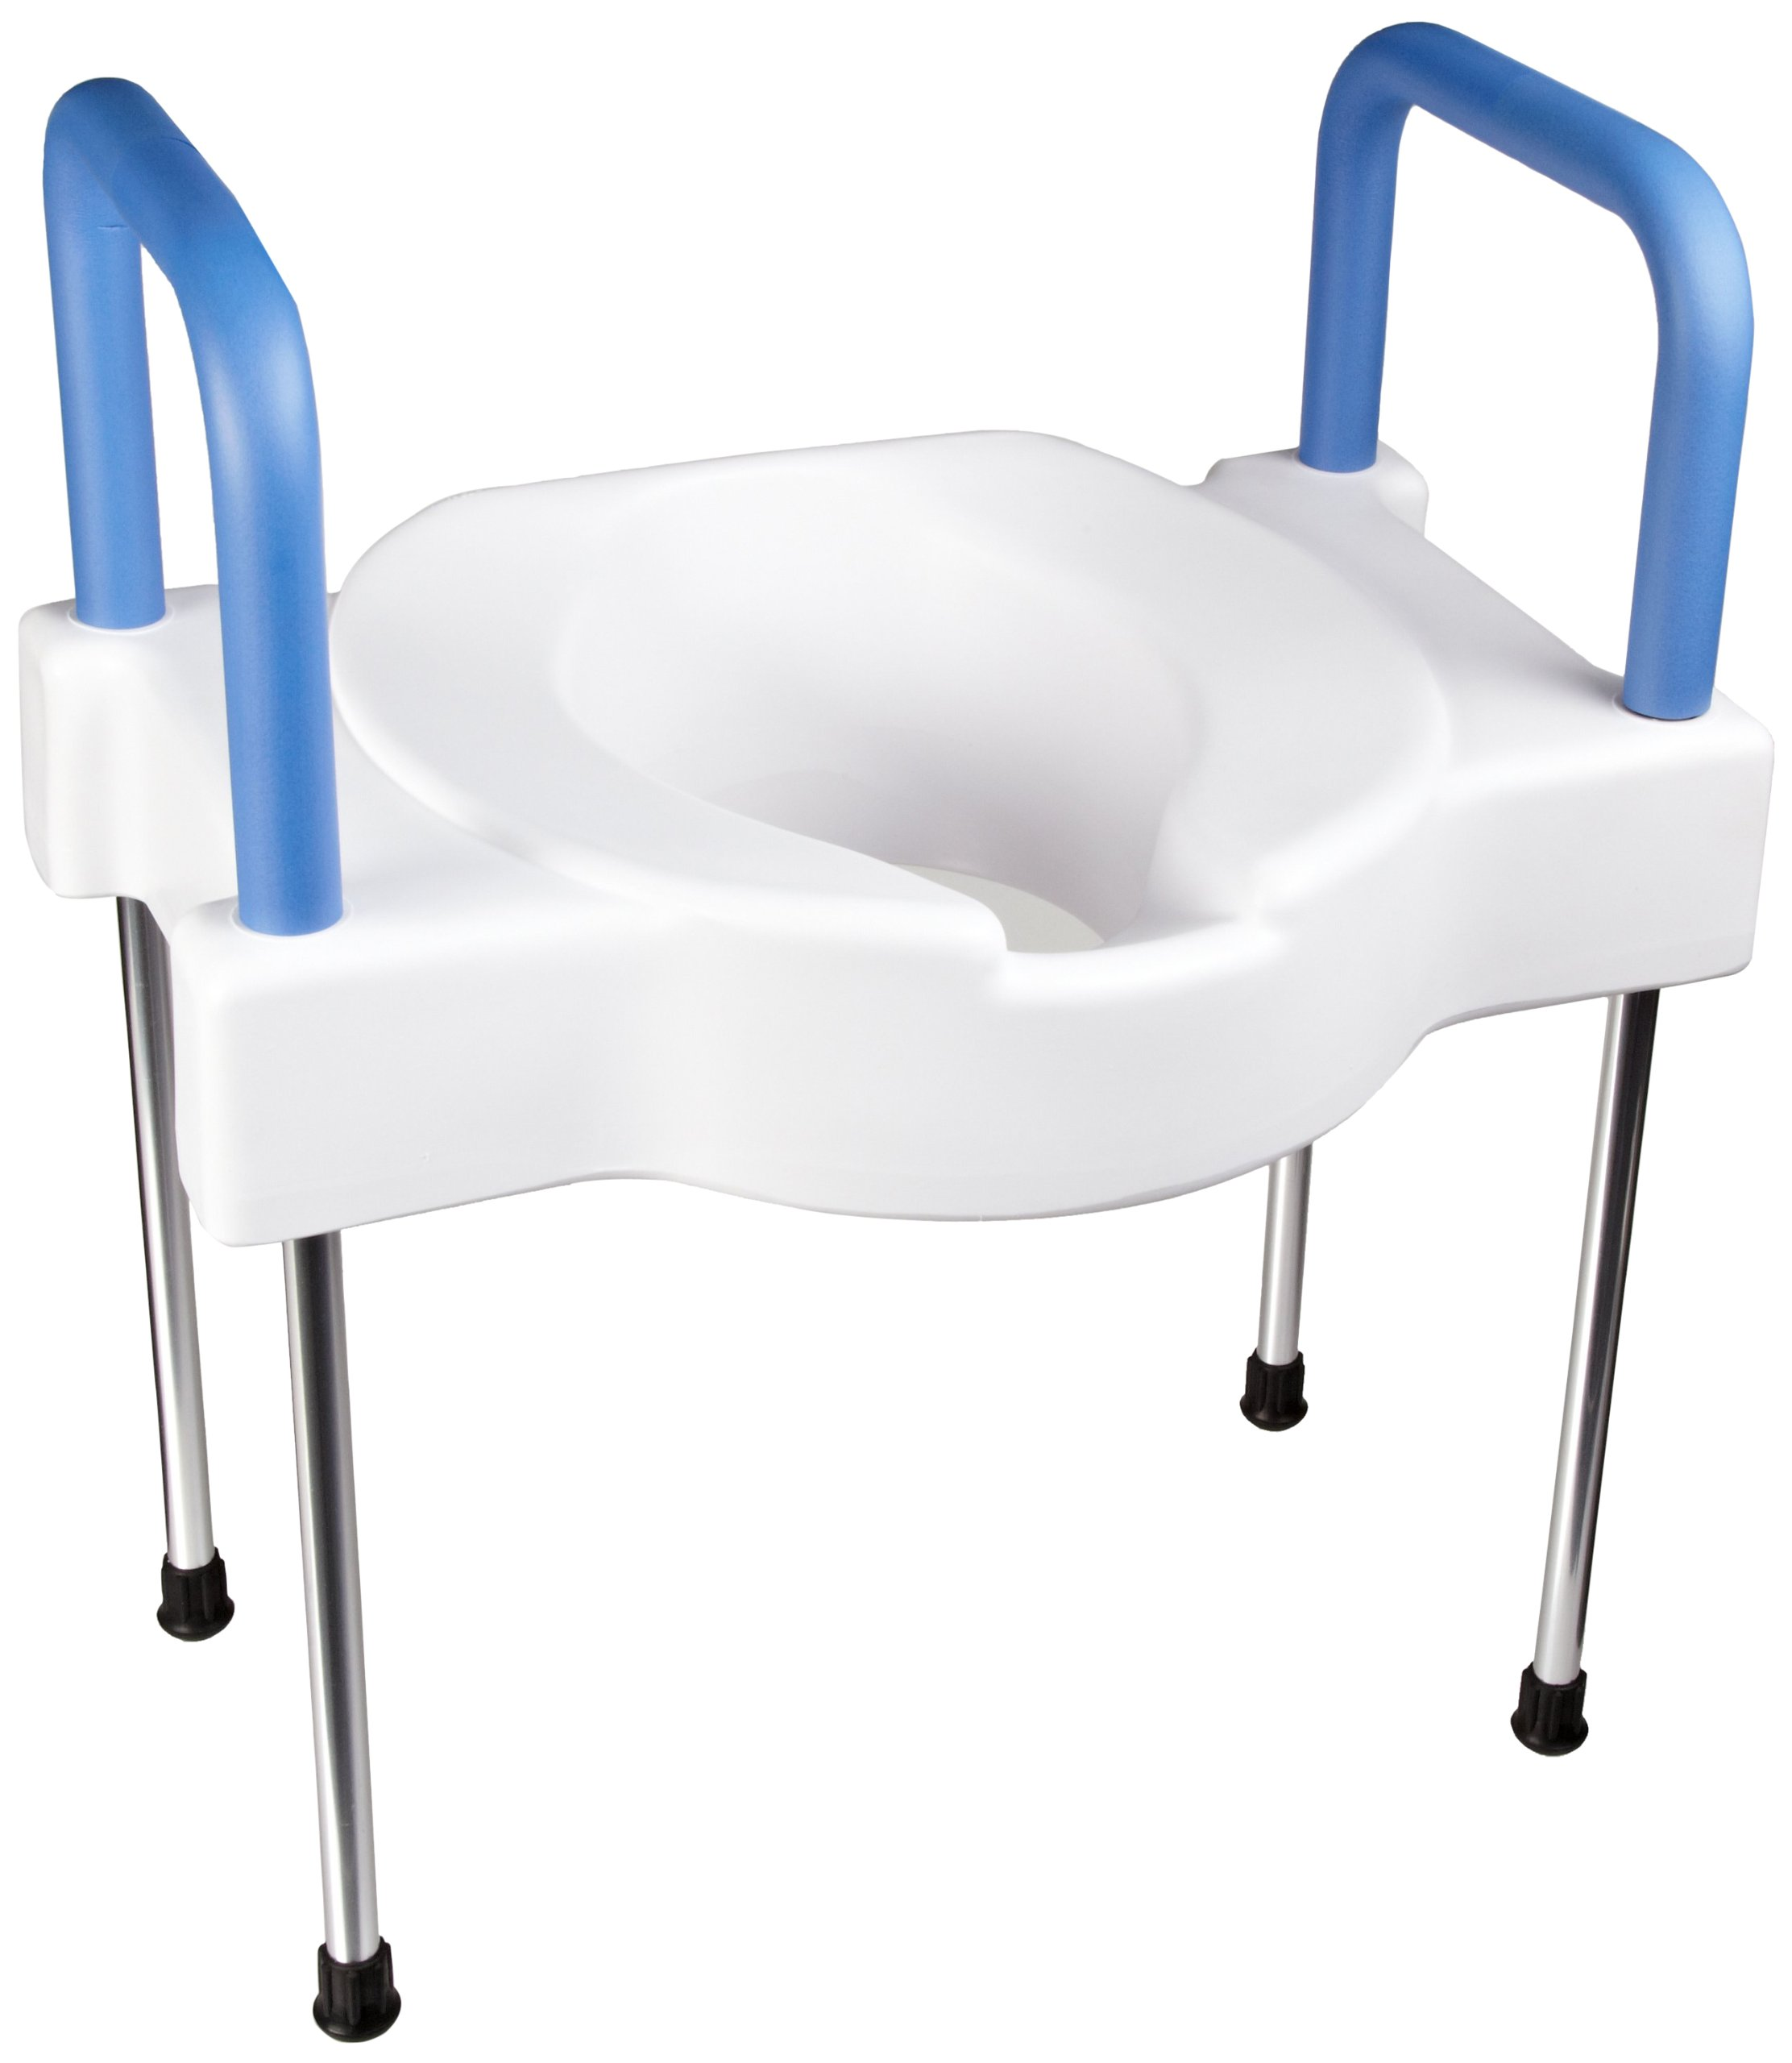 Maddak Tall-Ette Elevated Toilet Seat with Extra Wide Seating Surface and Legs (725881000) by SP Ableware